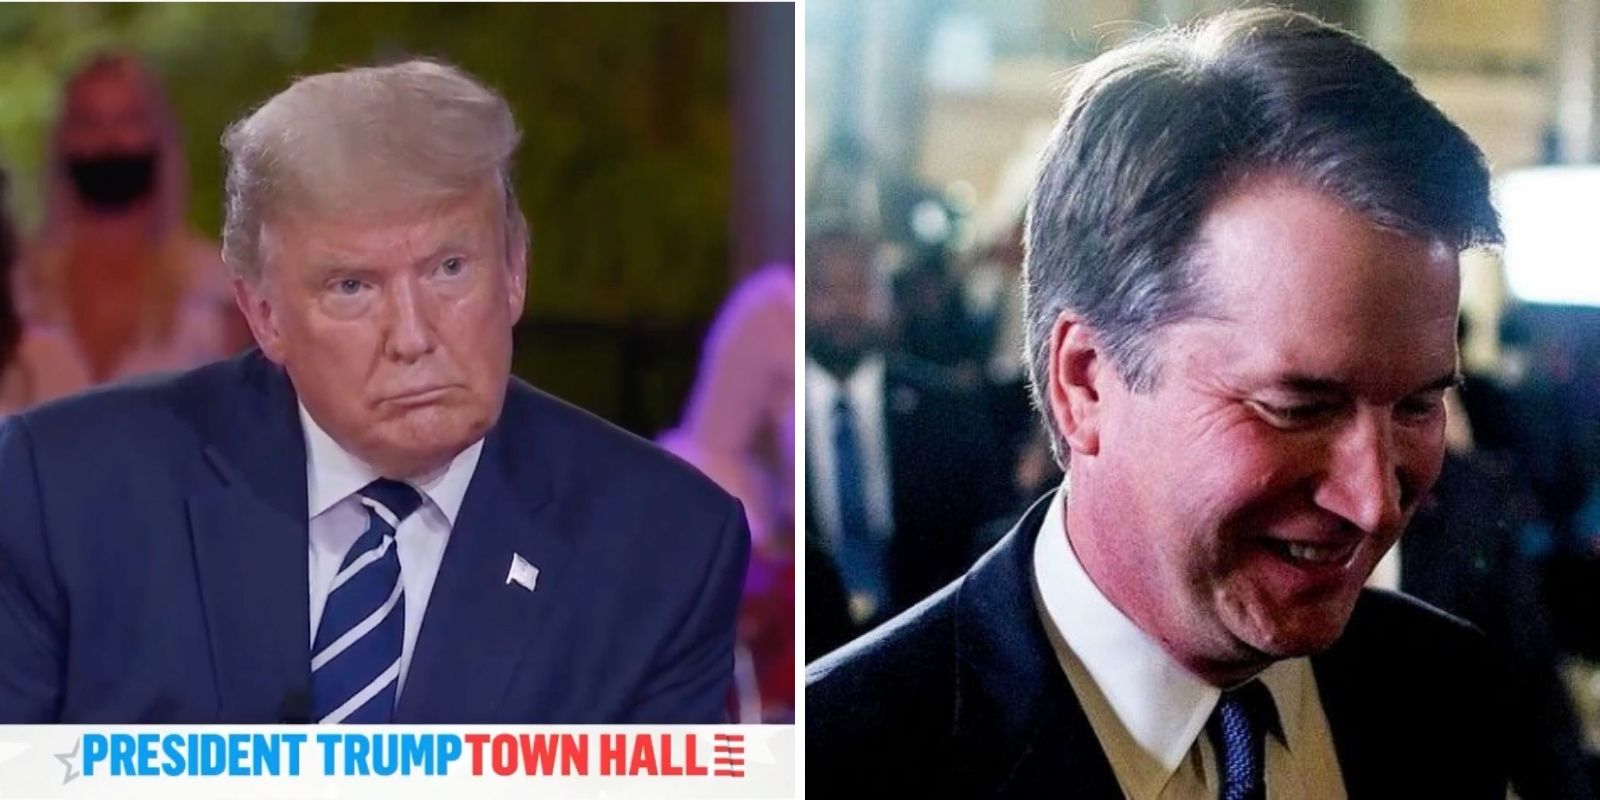 WATCH: Trump says the way Democrats smeared Kavanaugh changed the game